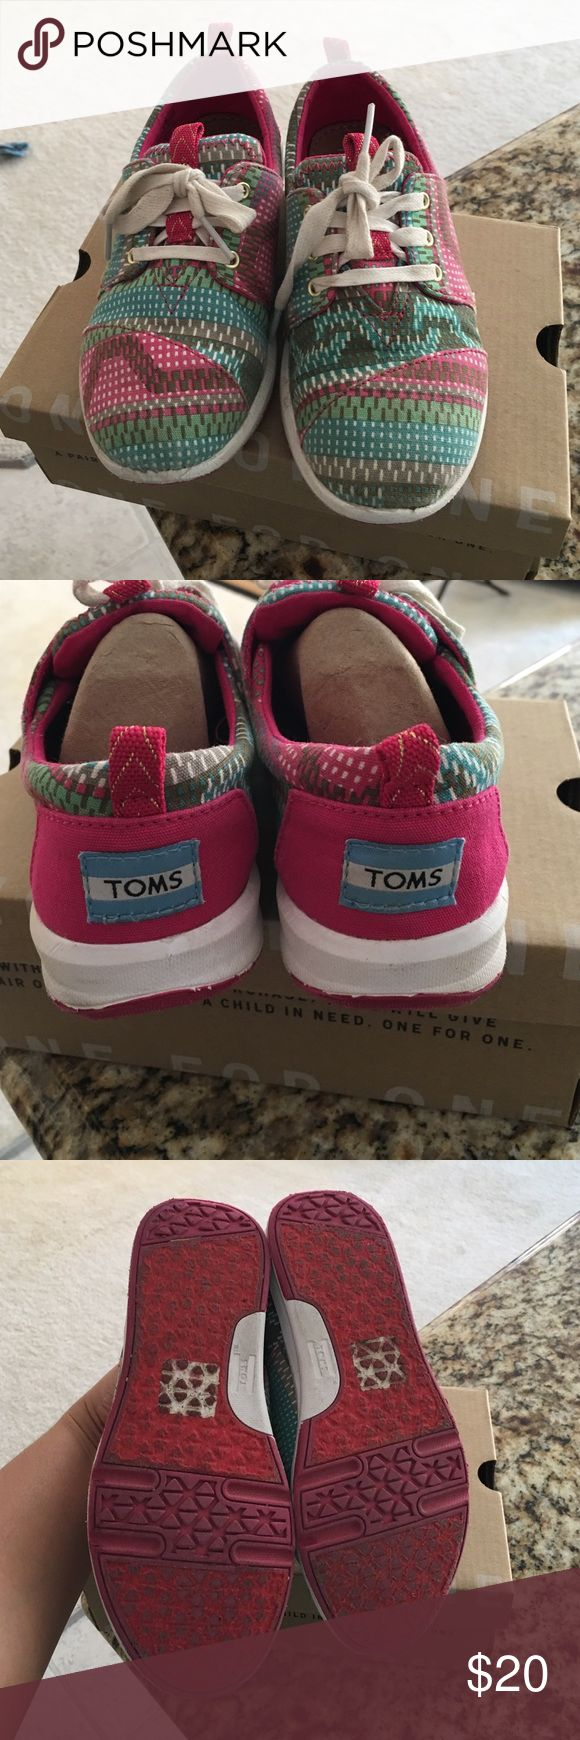 Authentic TOMS for Girls Good preowned condition. TOMS Shoes Flats & Loafers